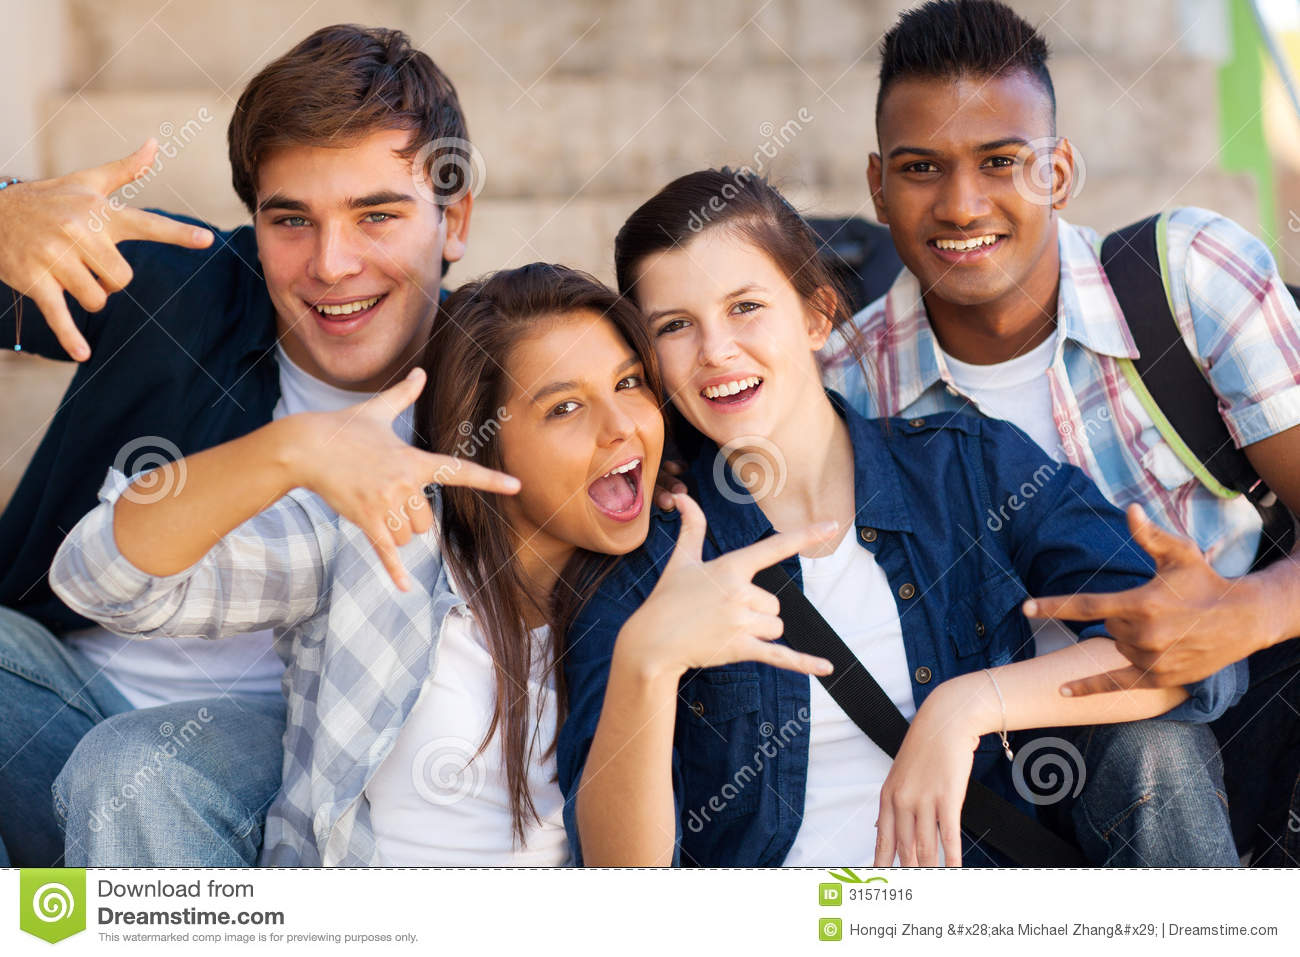 Group Cool Teenagers Royalty Free Stock Image - Image: 31571916